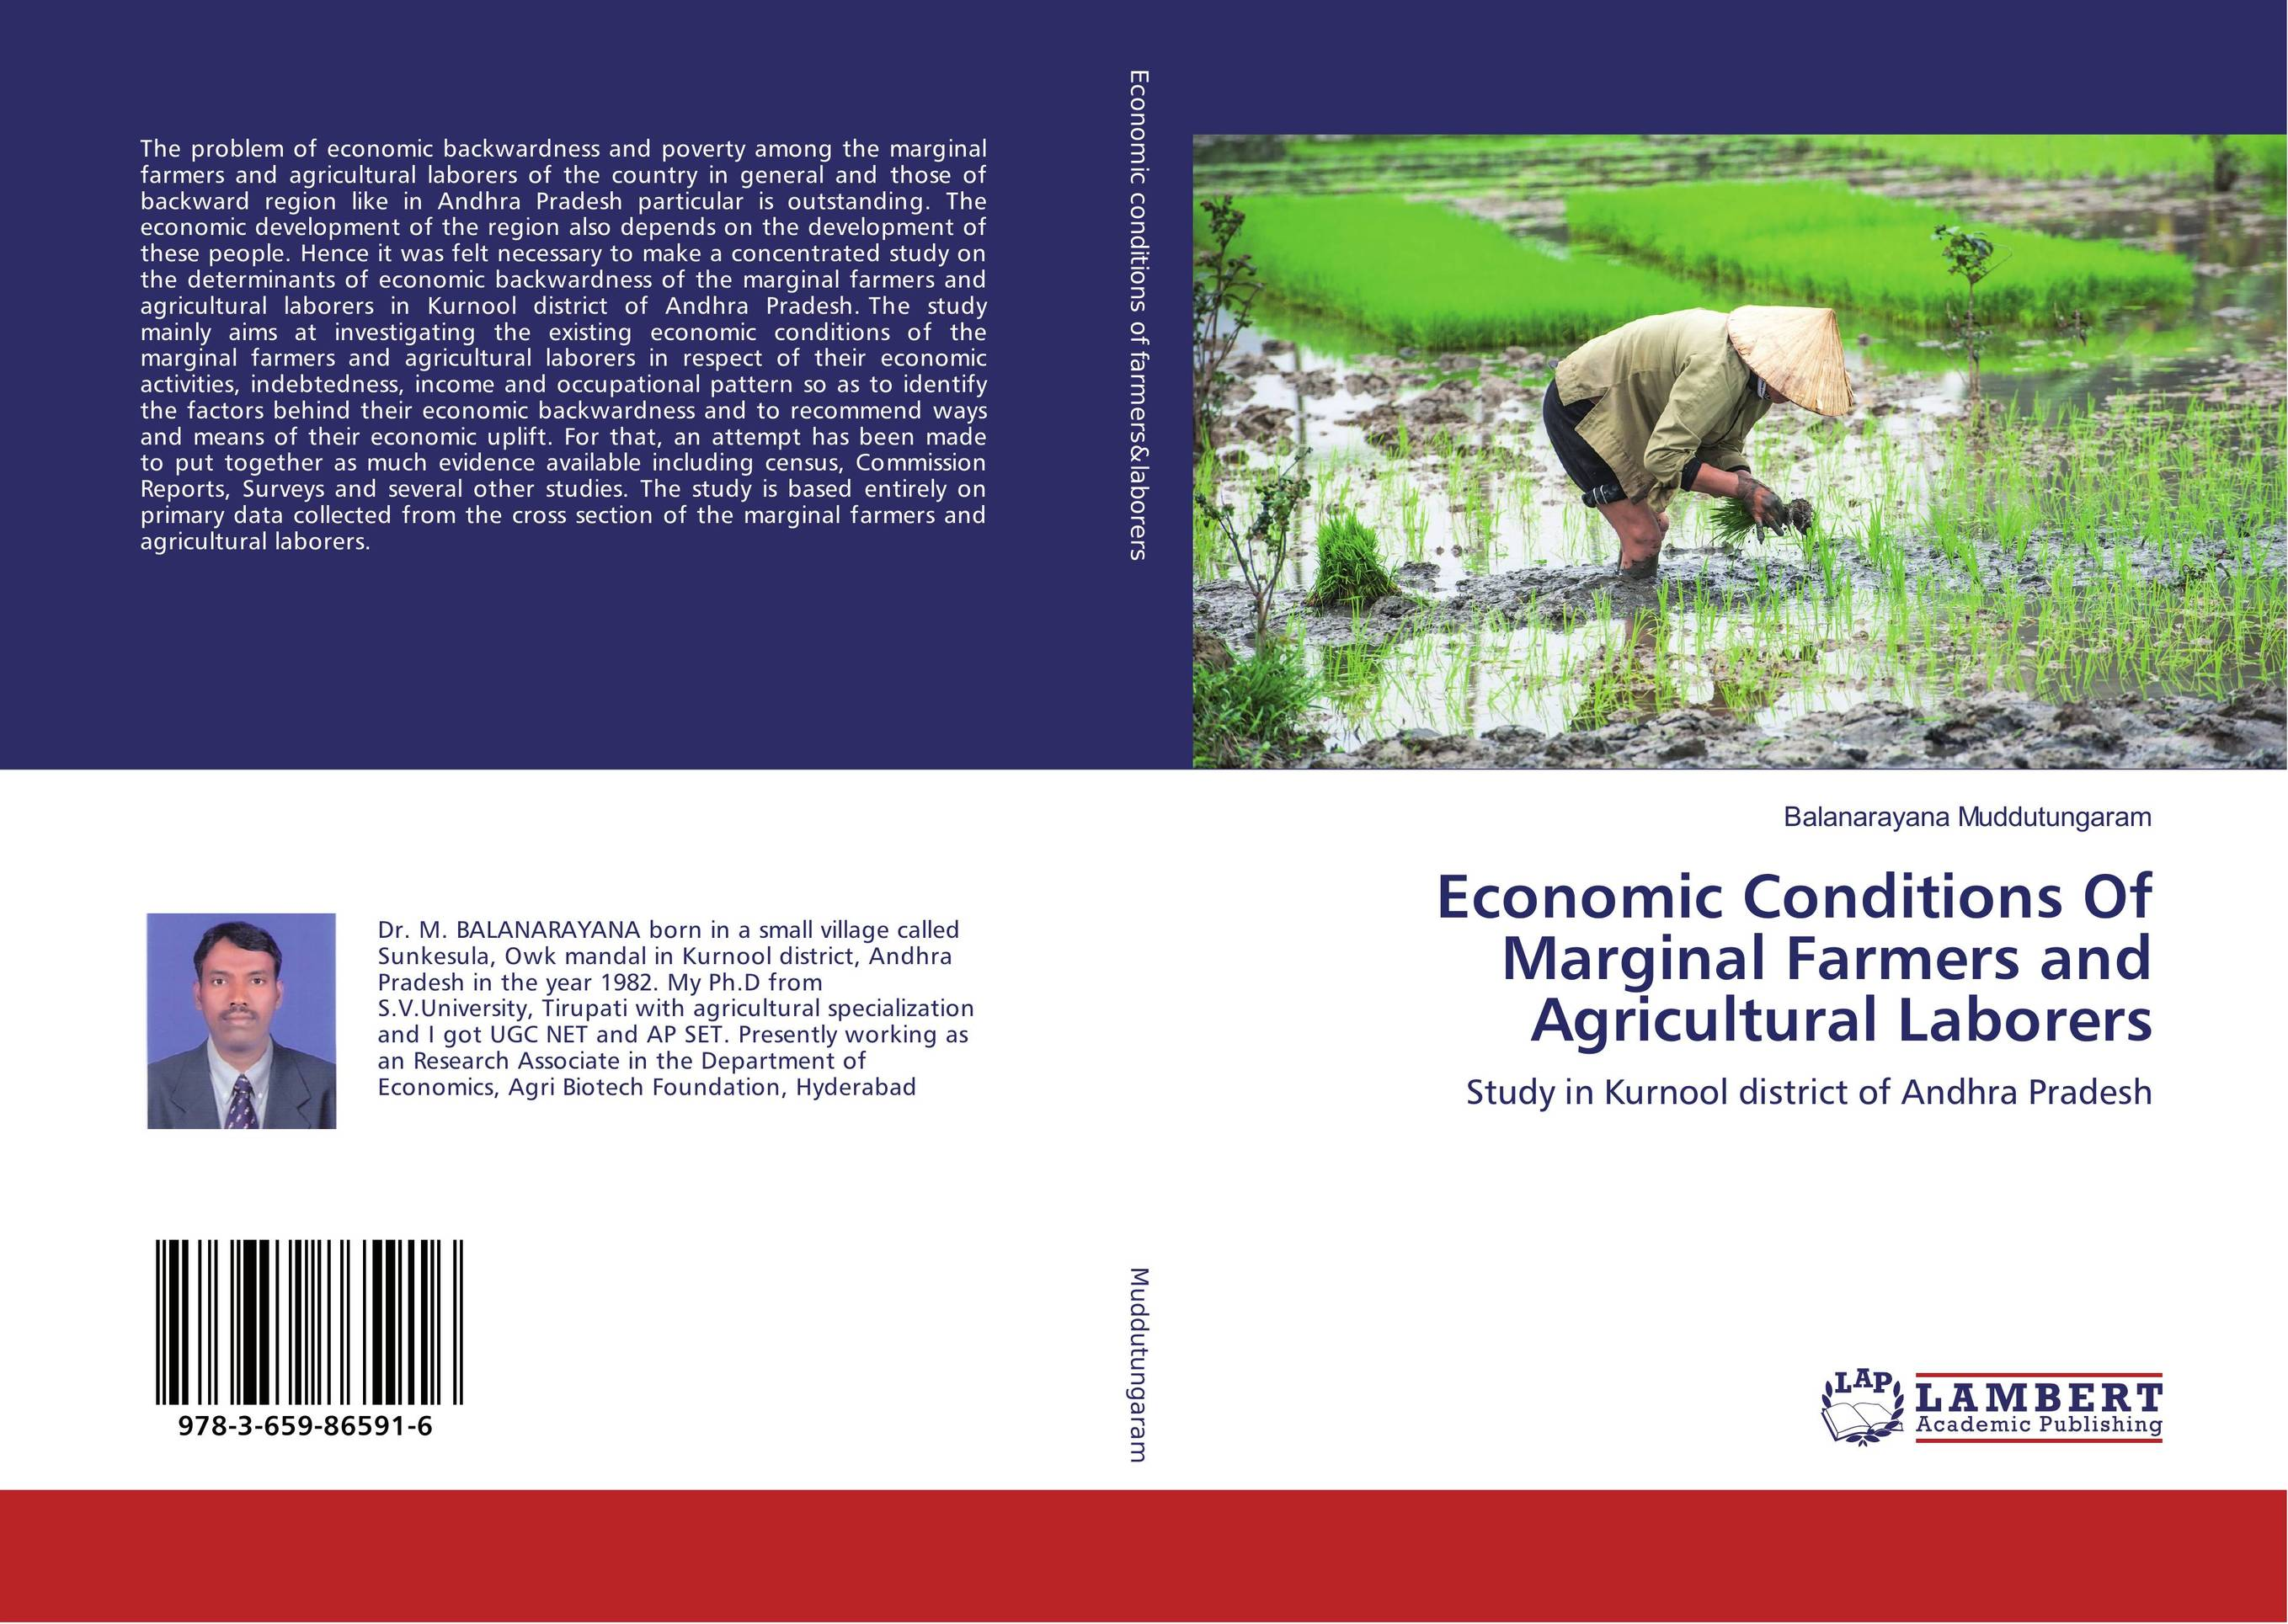 Economic Conditions Of Marginal Farmers and Agricultural Laborers economic methodology